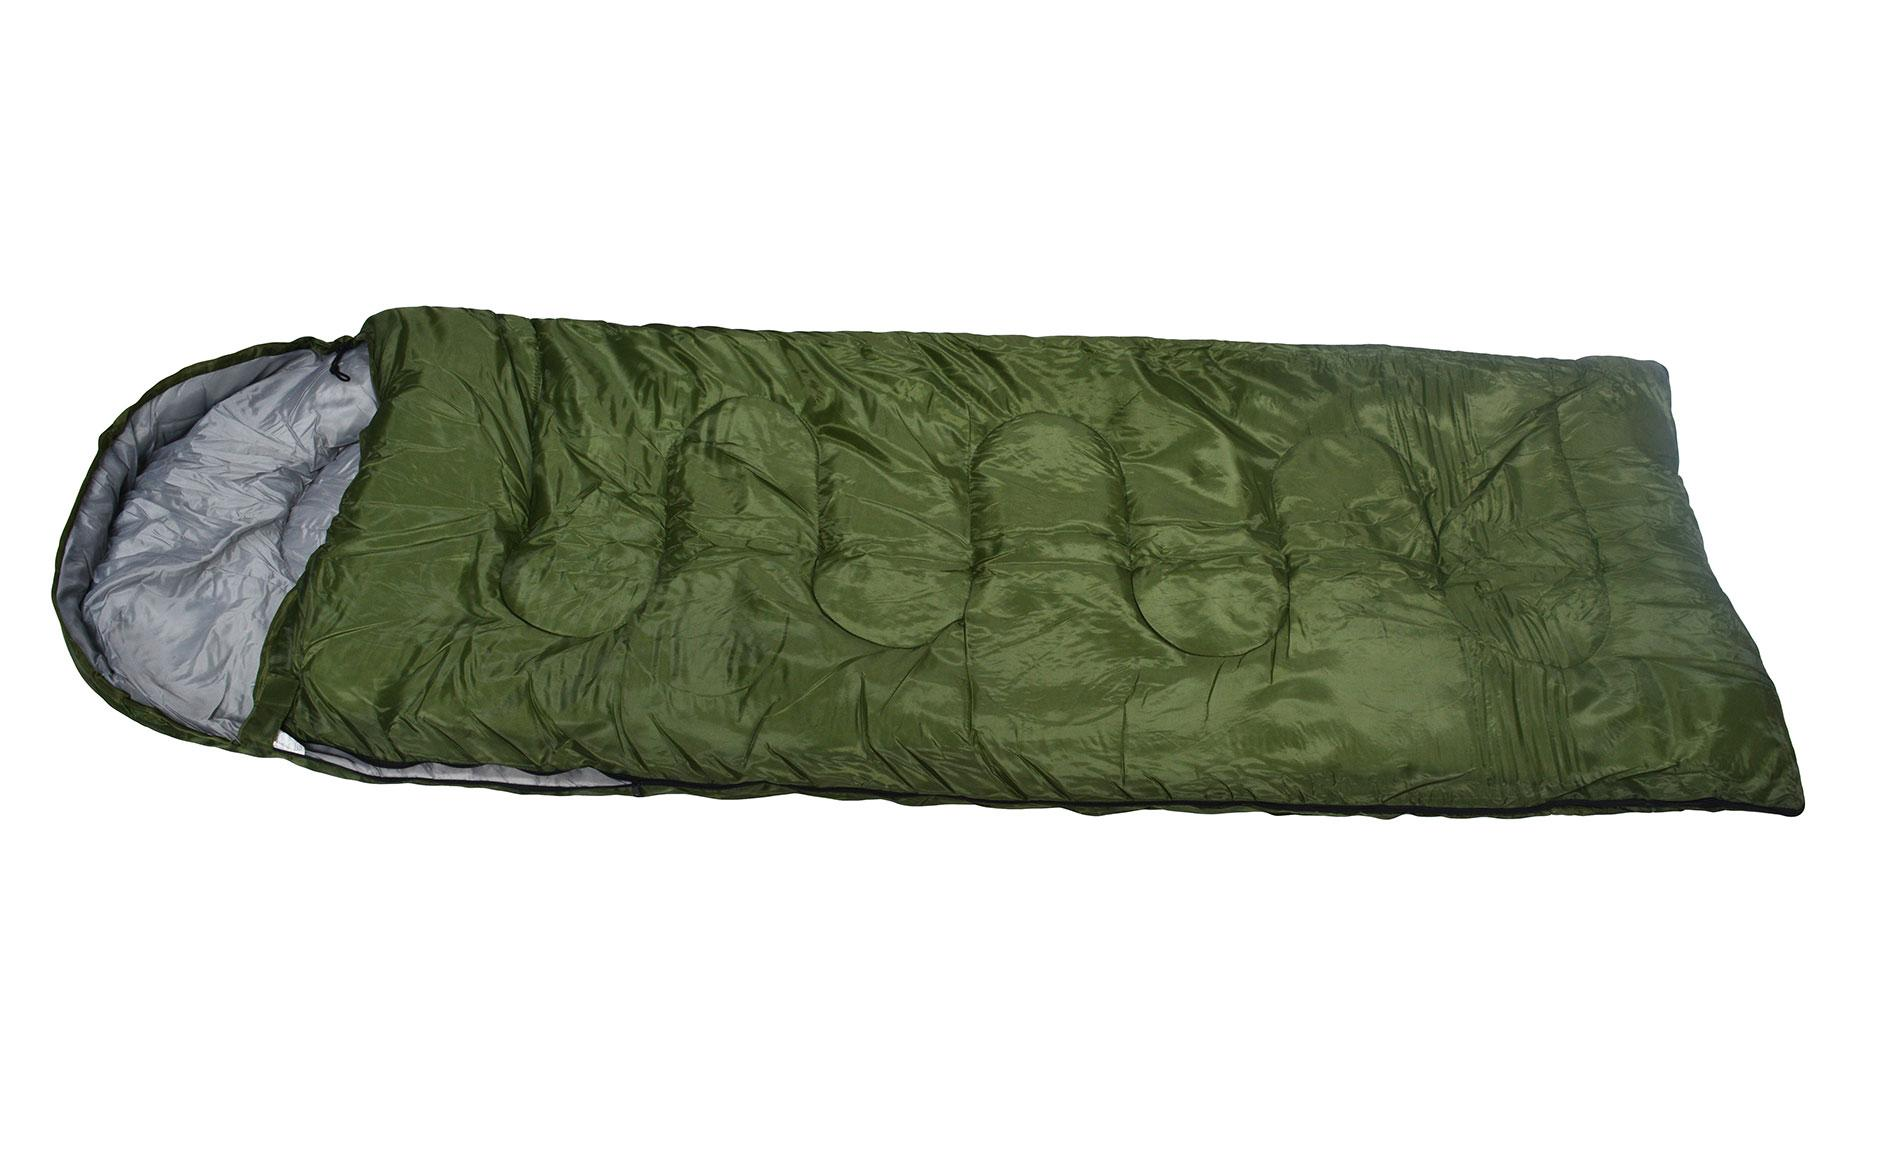 Sleeping bag 023 Made of fine material